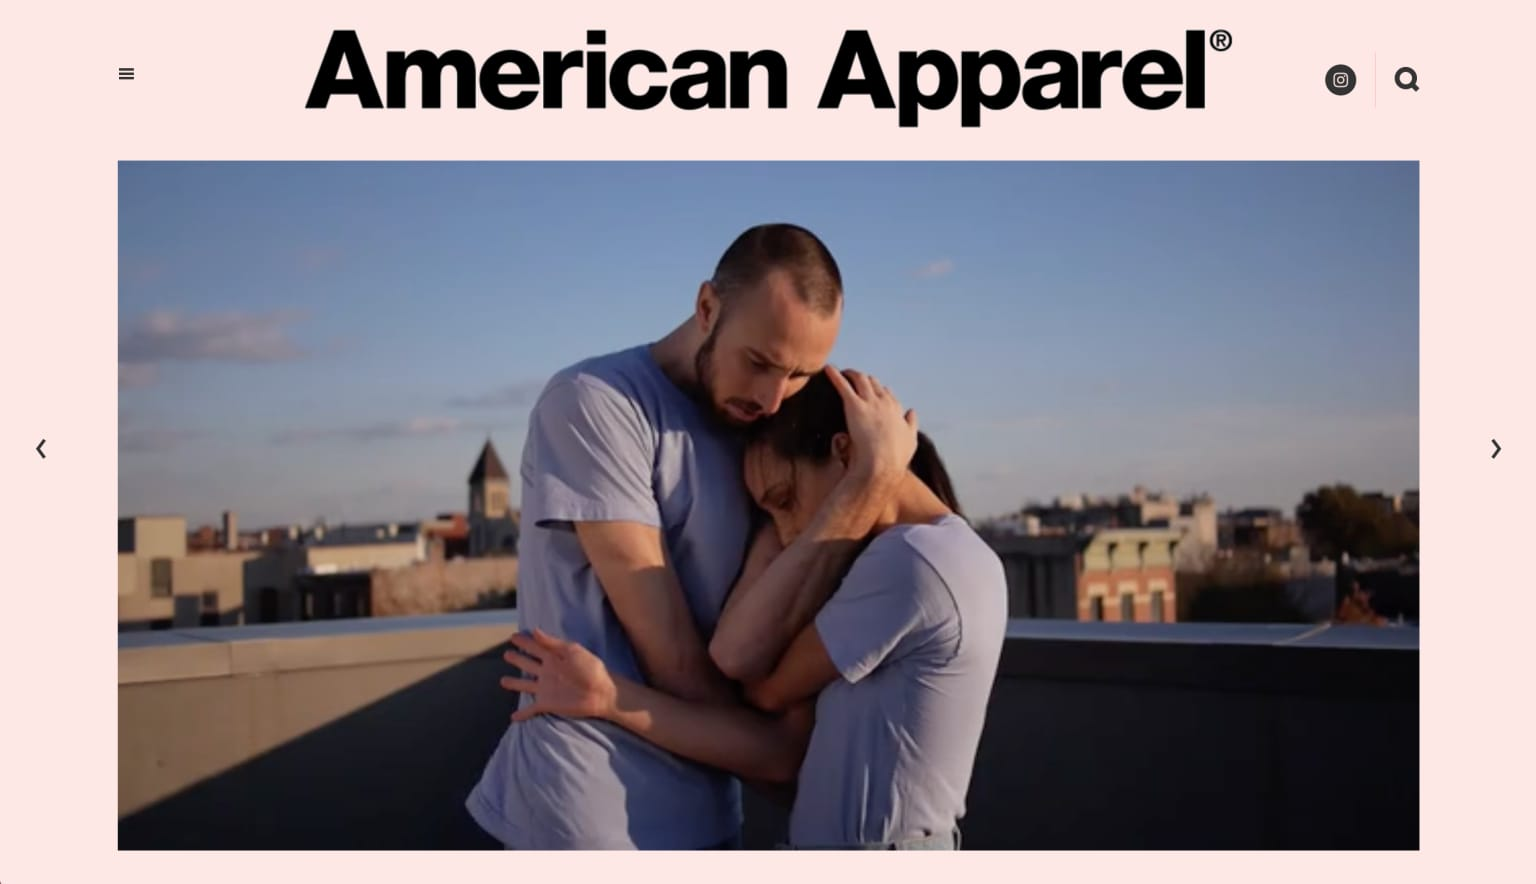 American Apparel - Name Something Blue